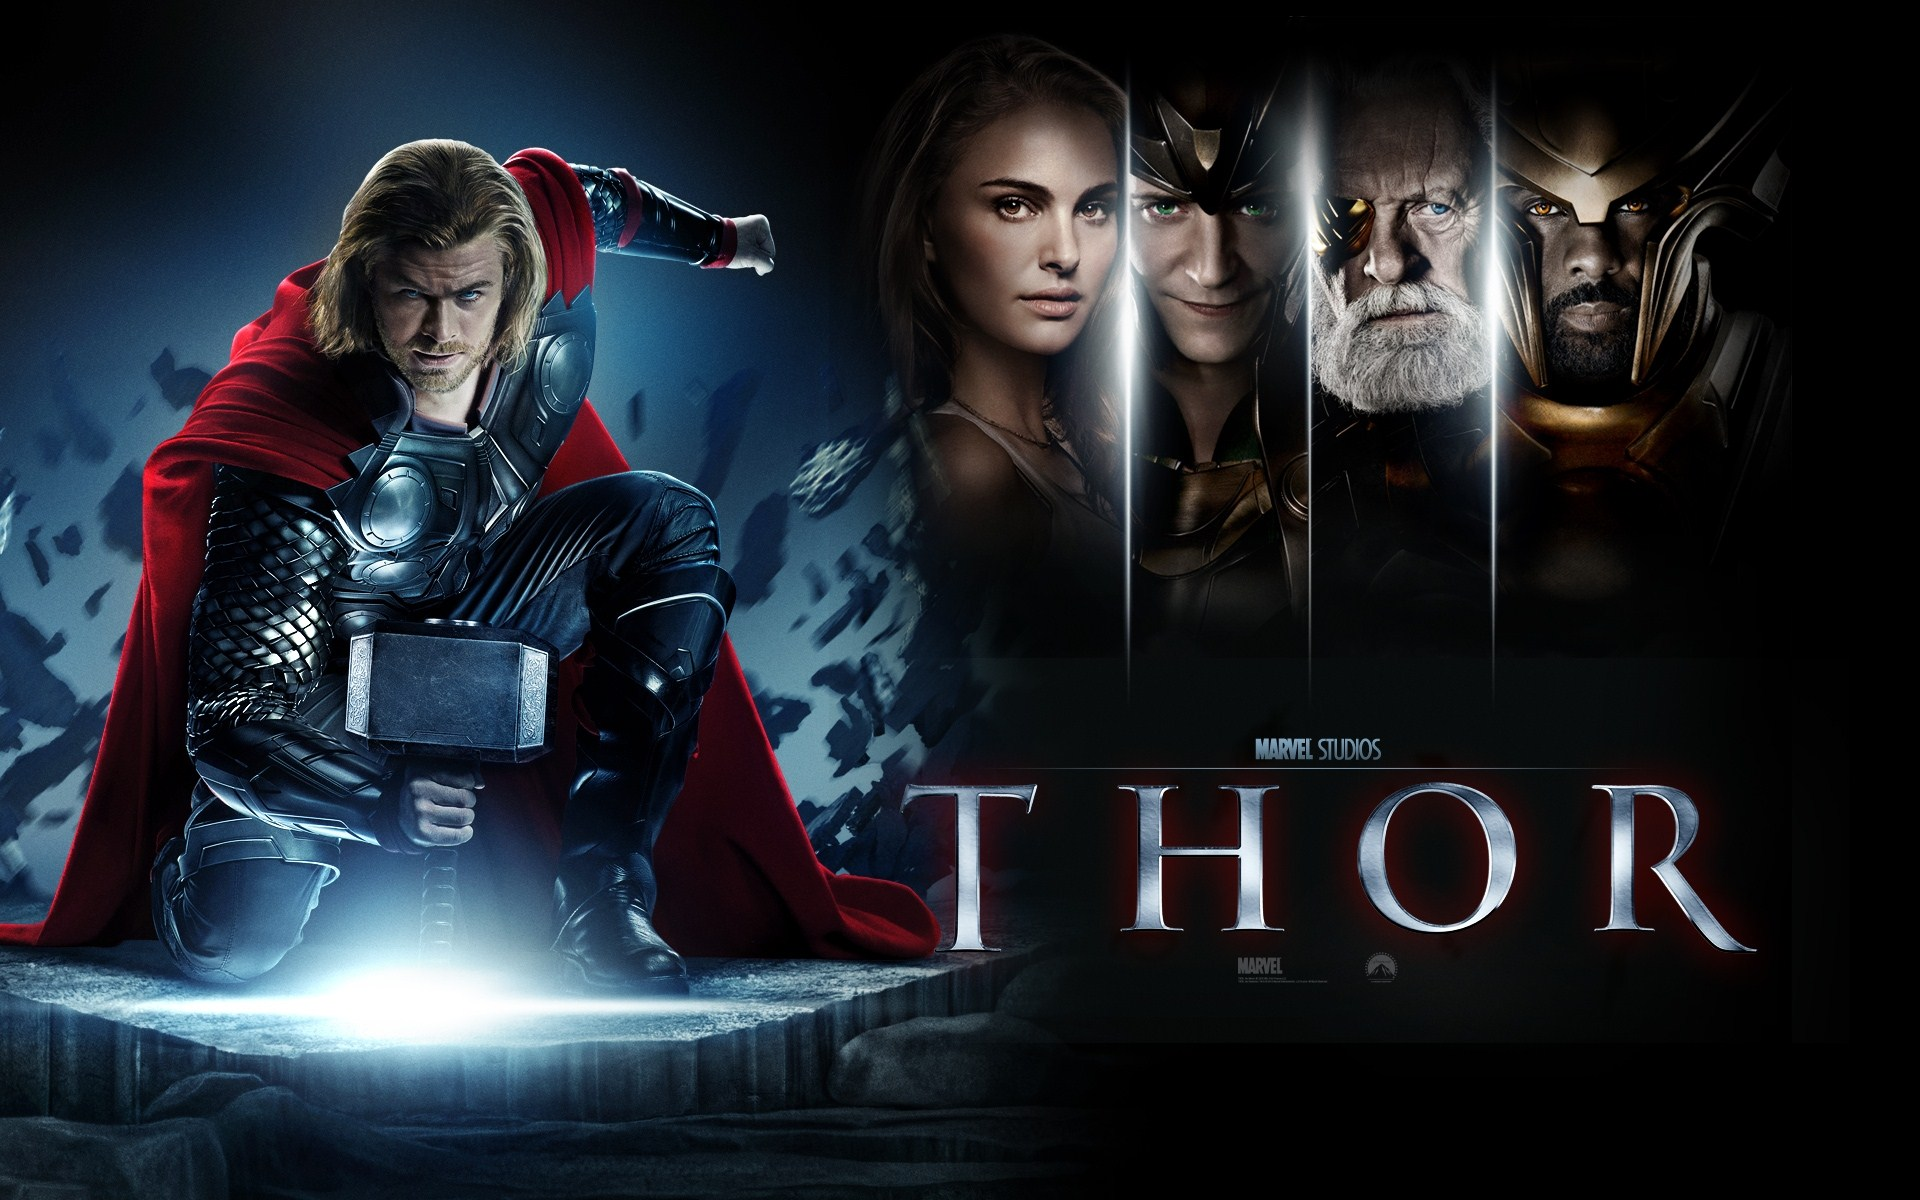 So Thor is not one of my favorite films. It started out that way at least. Now that I have seen it in sequence with the other Marvel films, I appreciate it ...